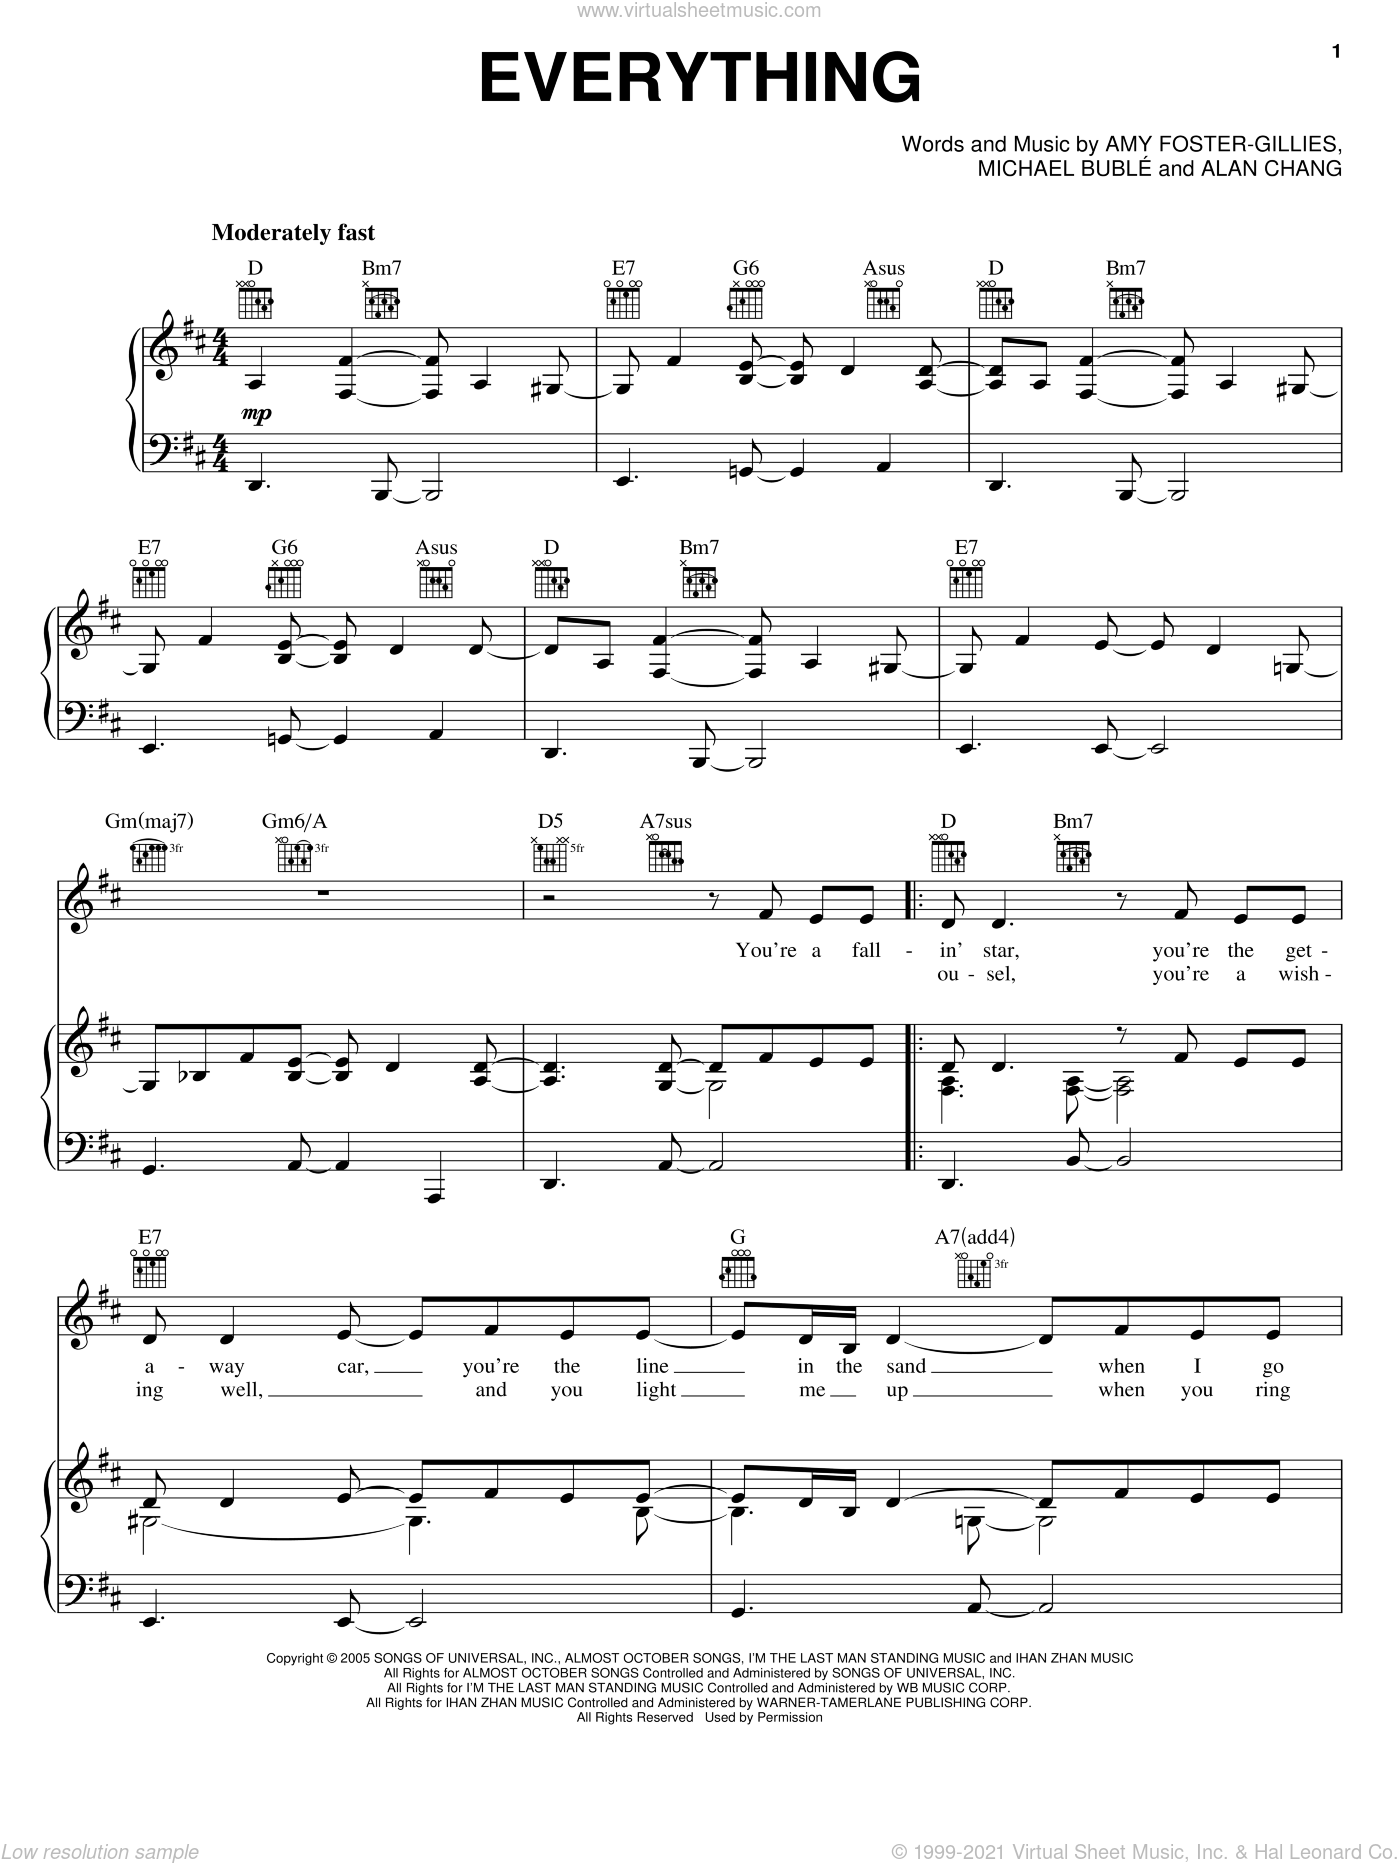 Everything sheet music for voice, piano or guitar by Amy Foster-Gillies